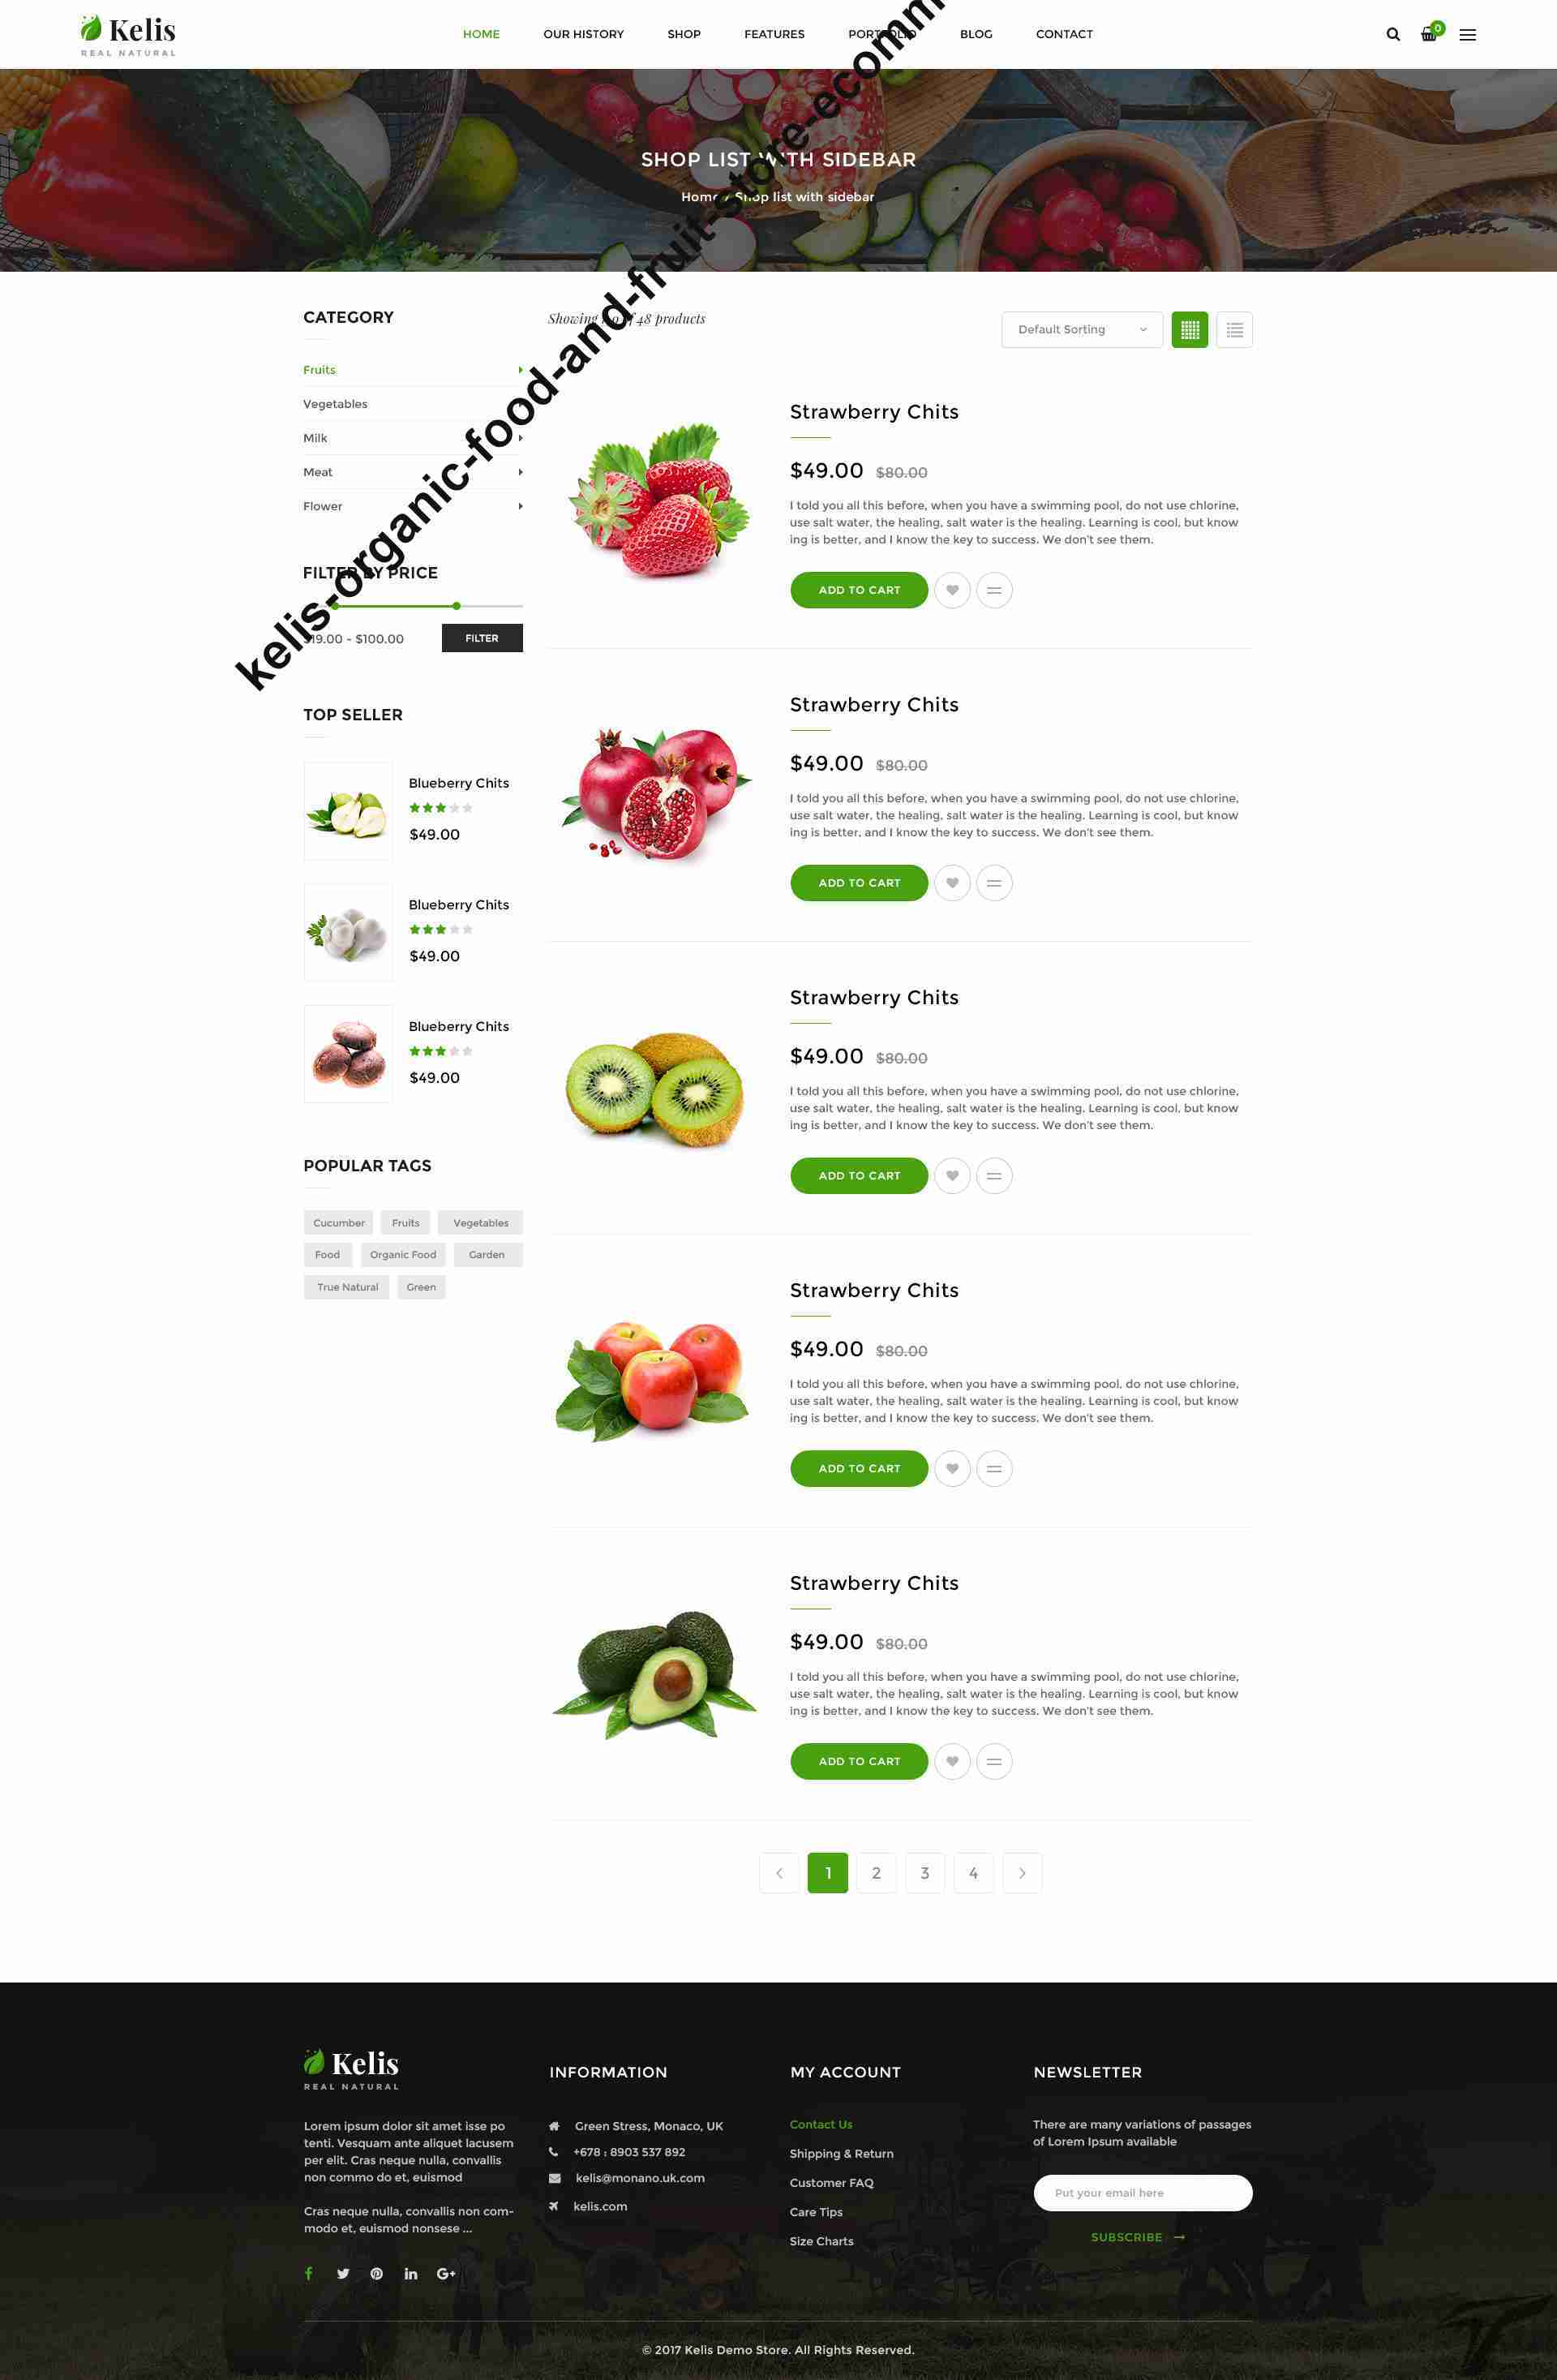 https://images.besthemes.com/images/h1_kelis-organic-food-and-fruit-store-ecommerce-shopify-theme7-_-234864139/Theme-s20s-Preview/06_Category_List.jpg